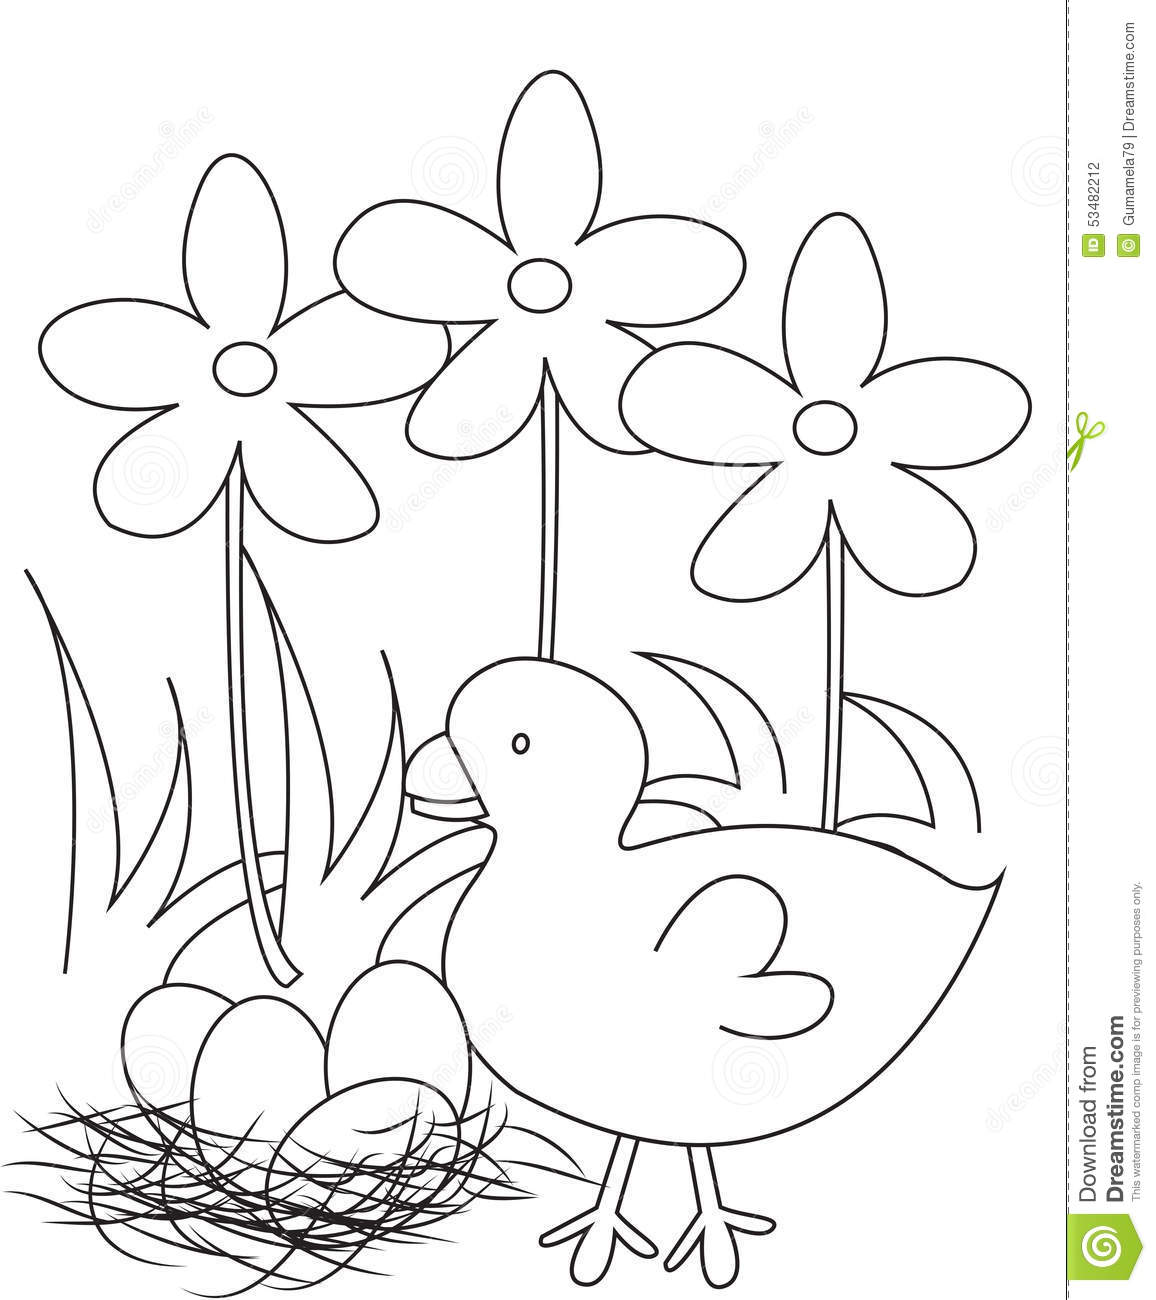 bird eggs coloring pages - photo#14